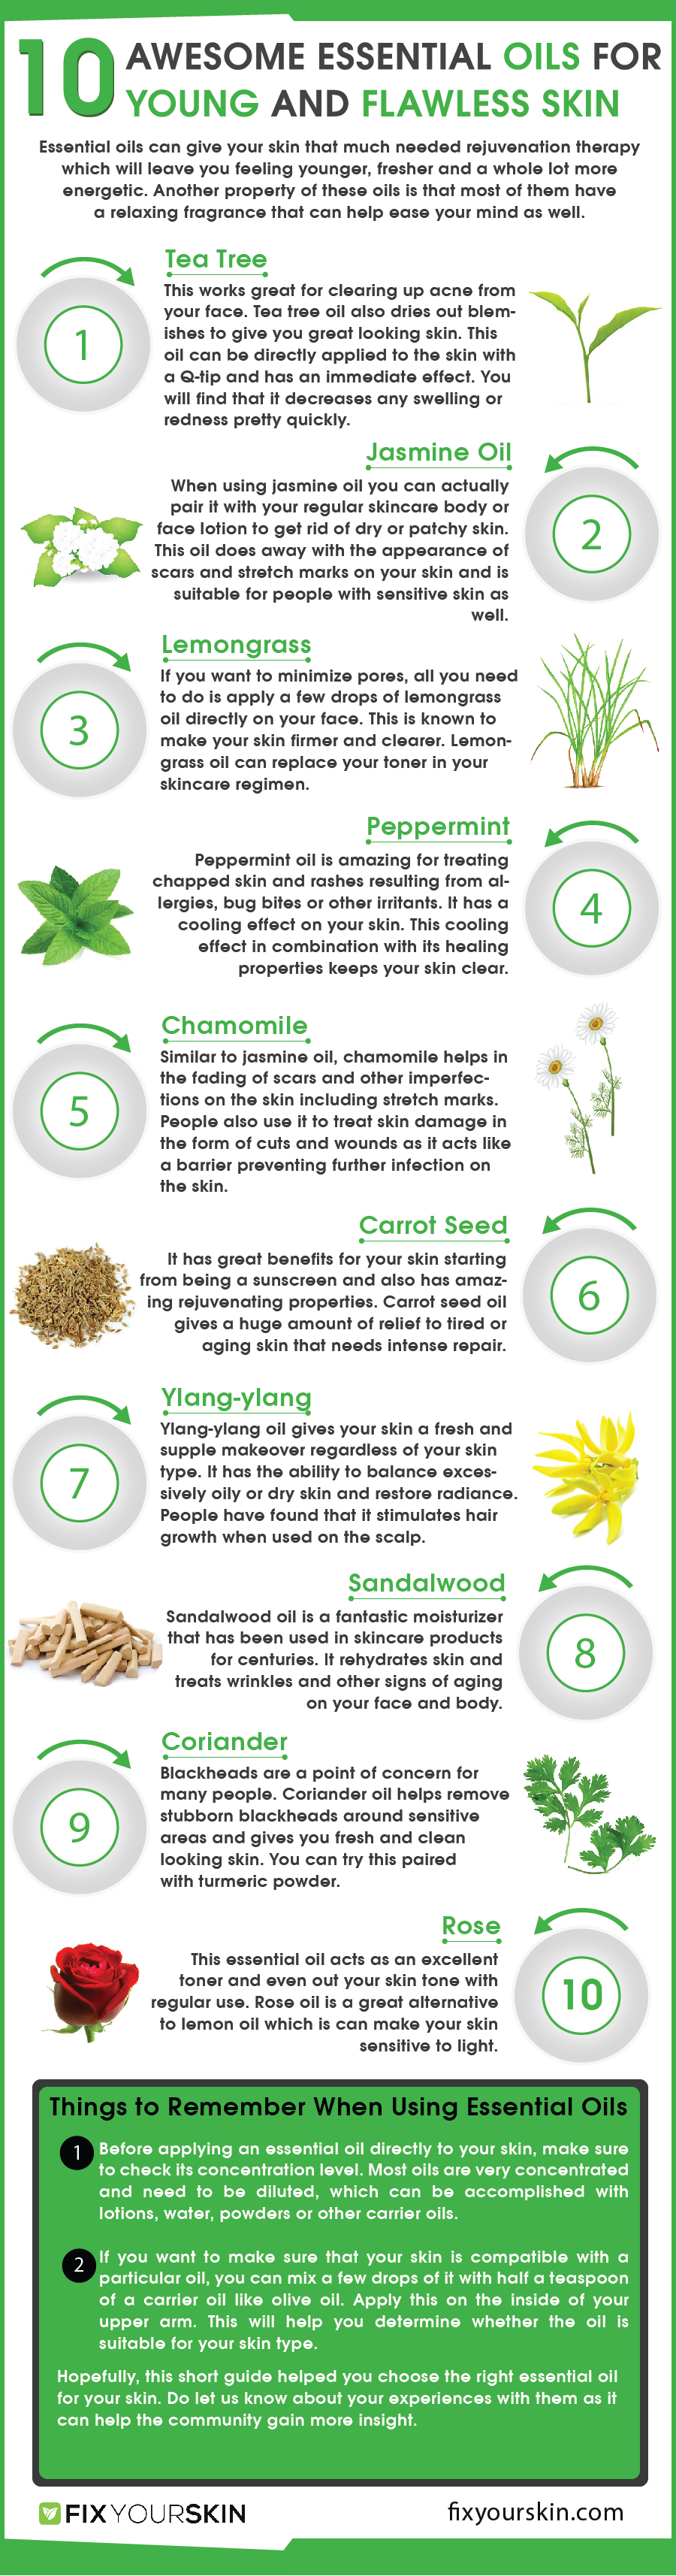 10 Awesome Essential Oils for Young and Flawless Skin